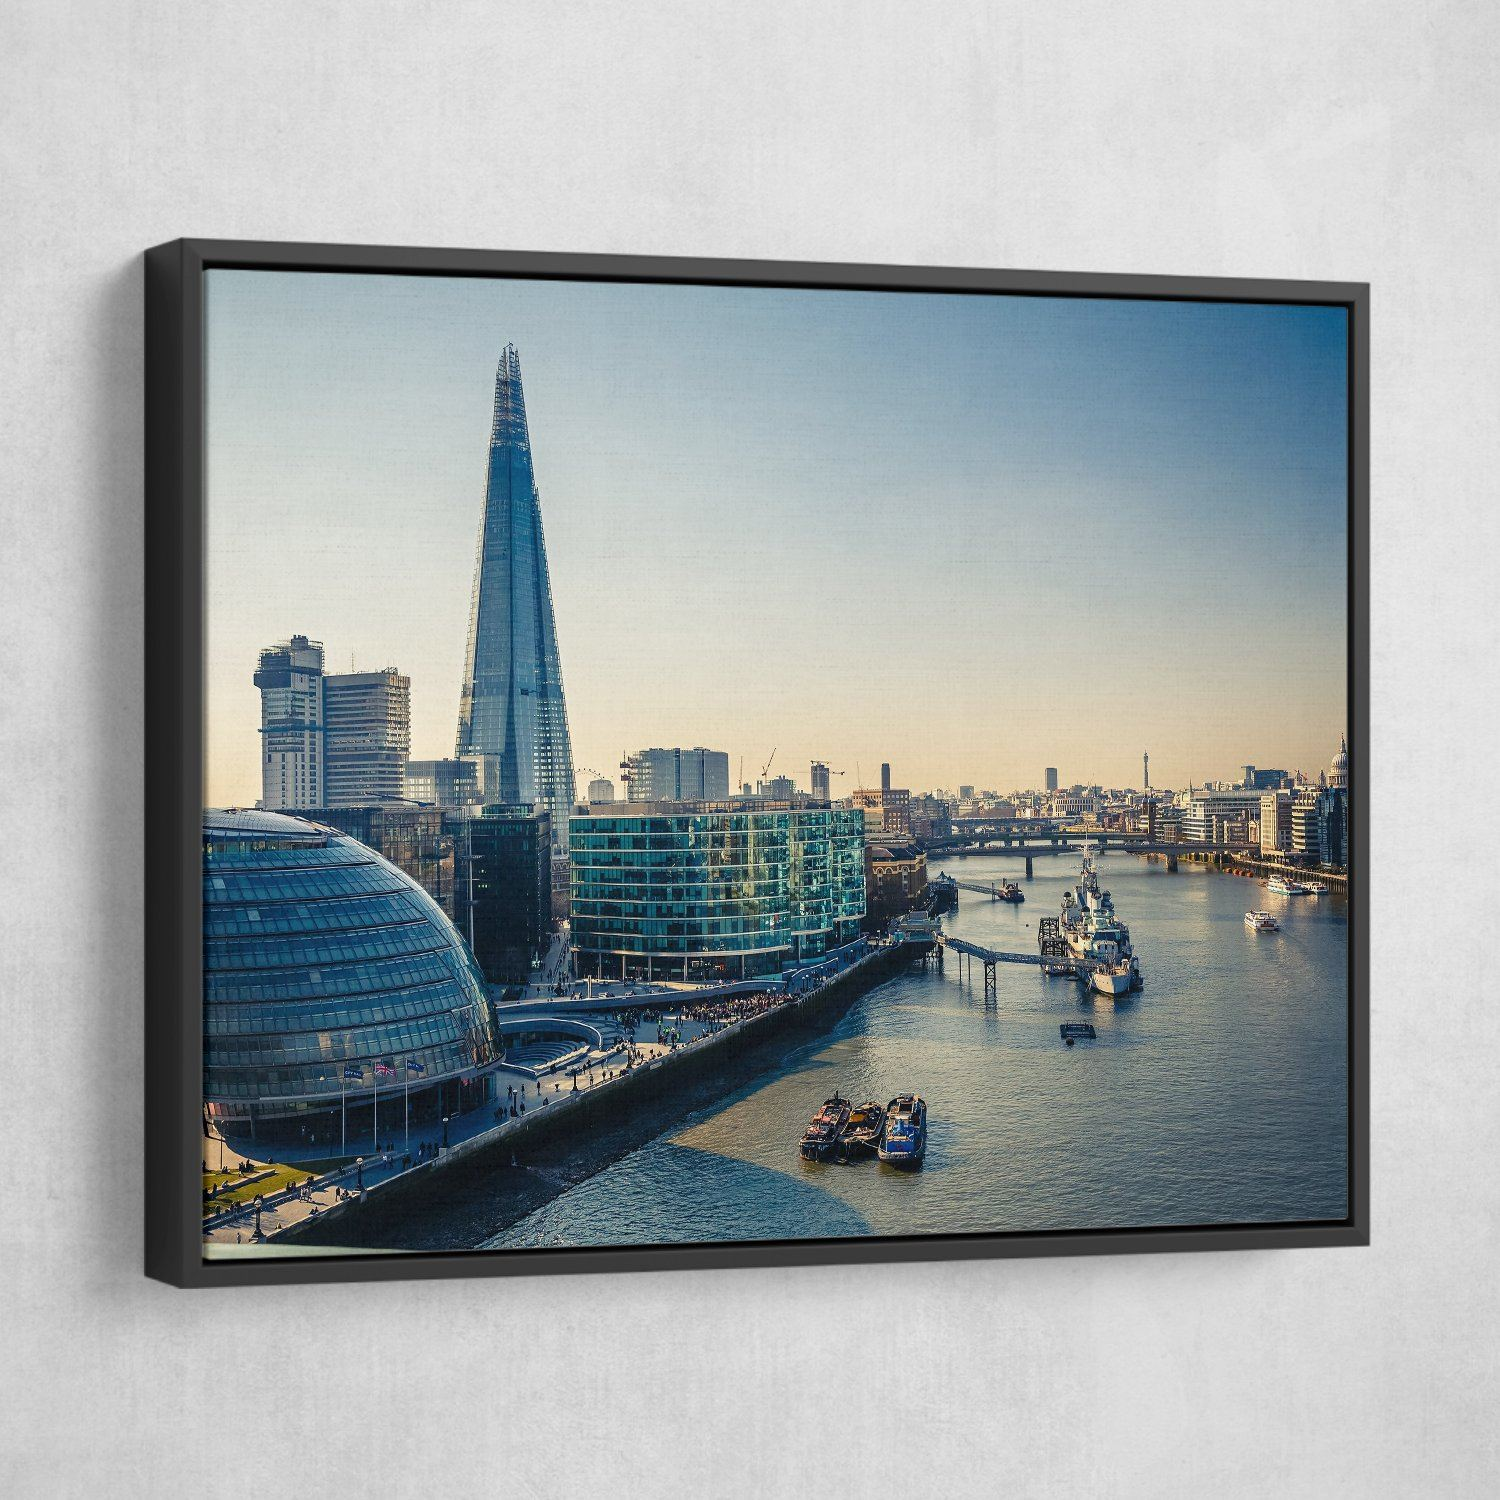 Thames and London City wall art black frame